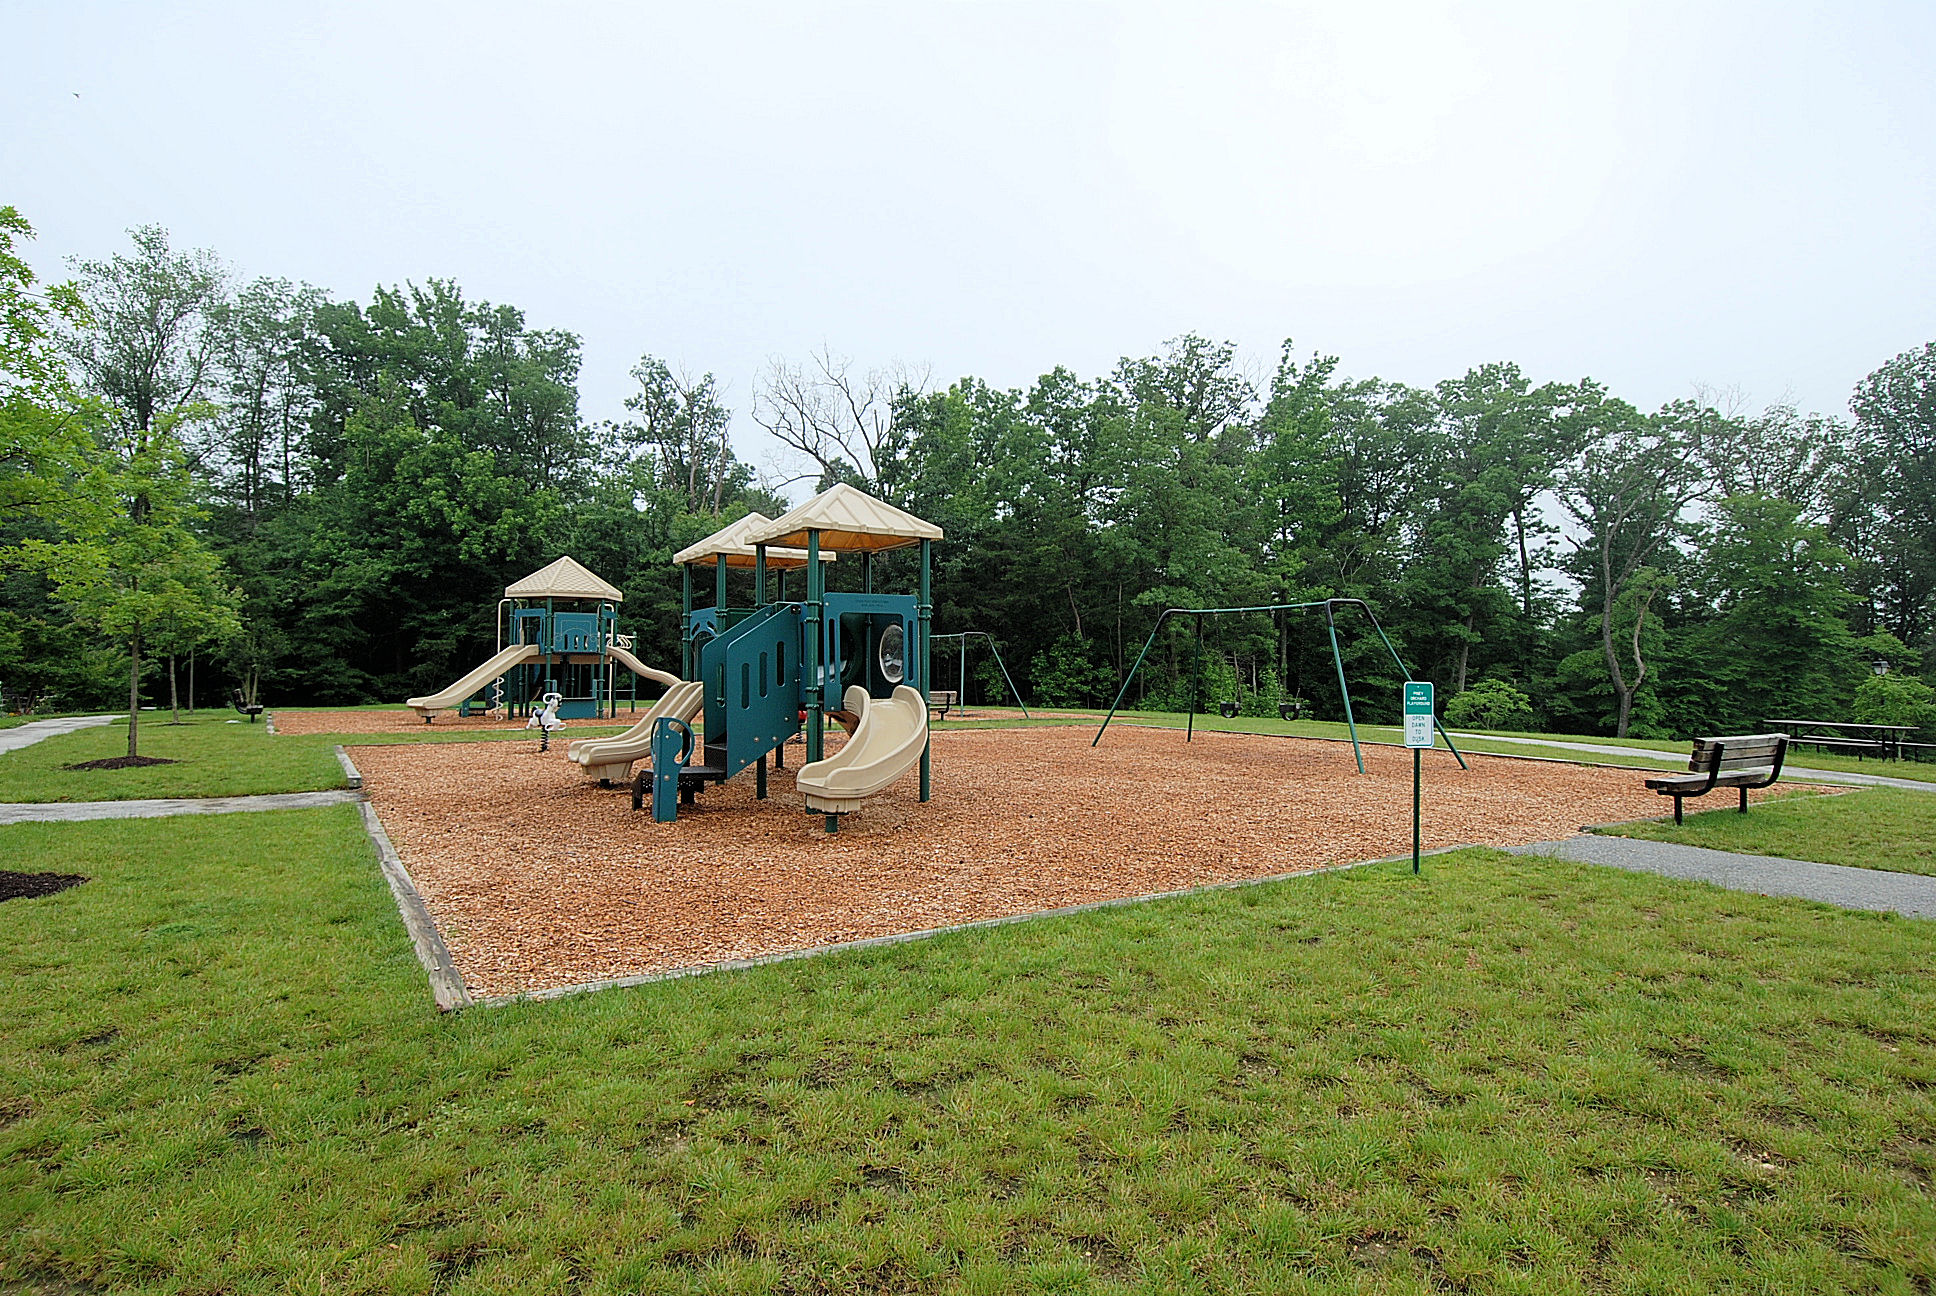 Piney Orchard tot lot